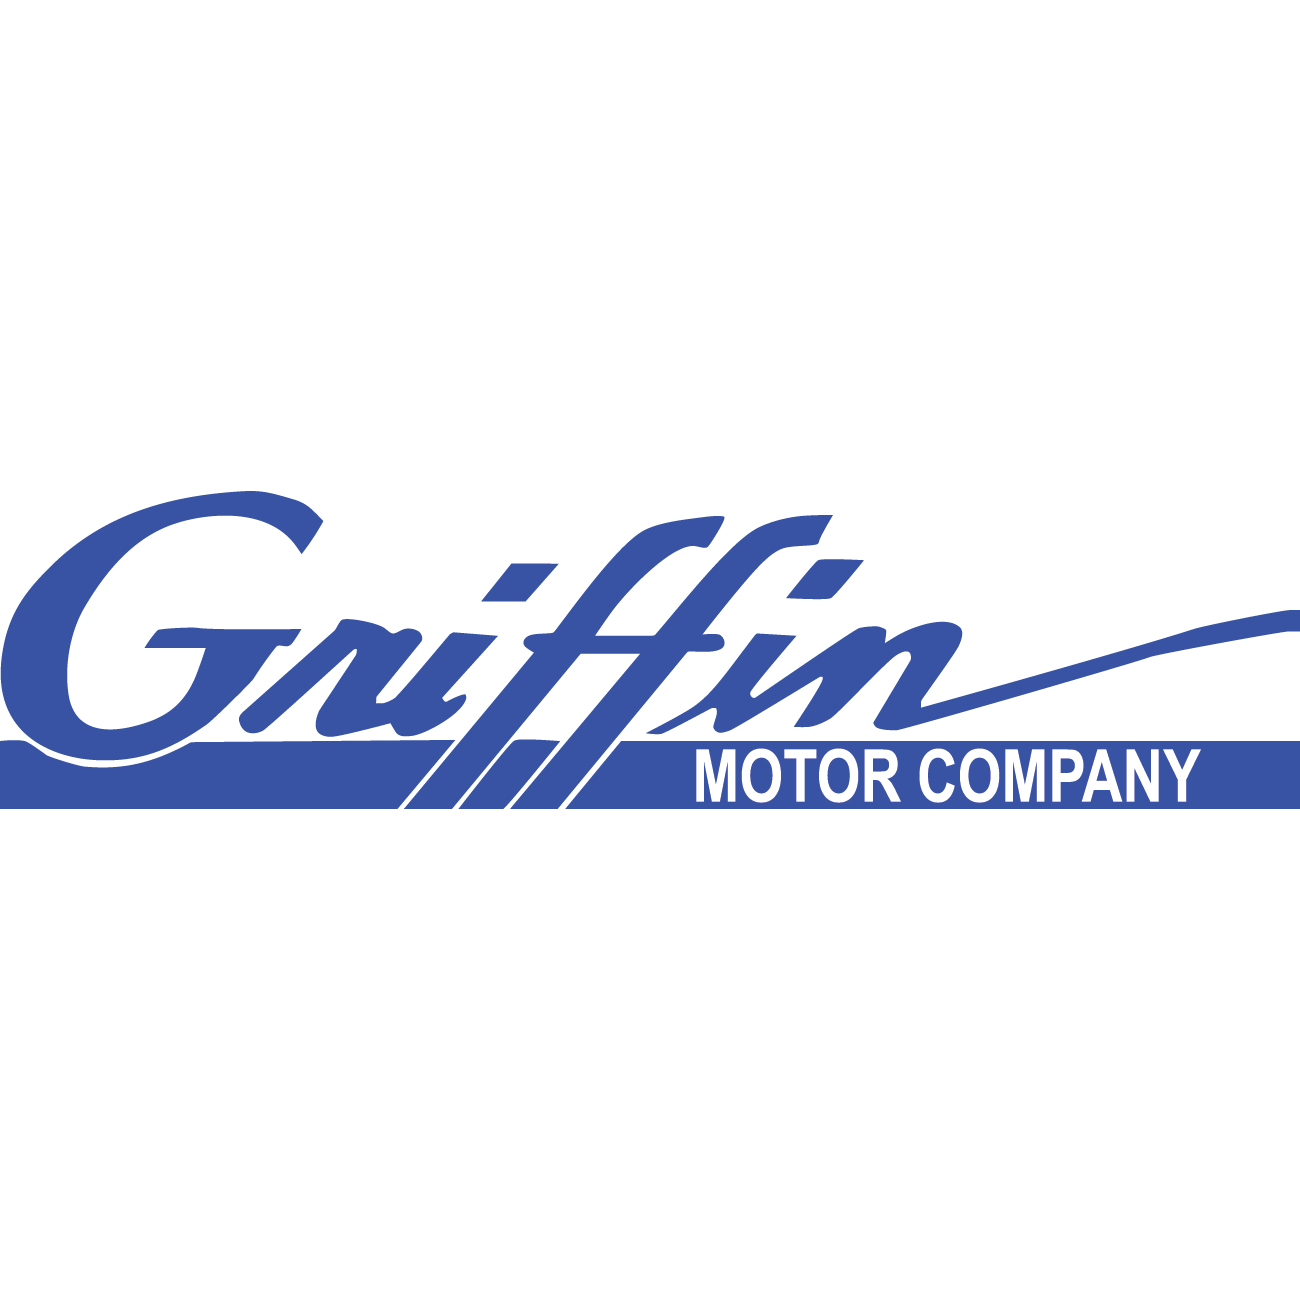 Griffin Motor Company